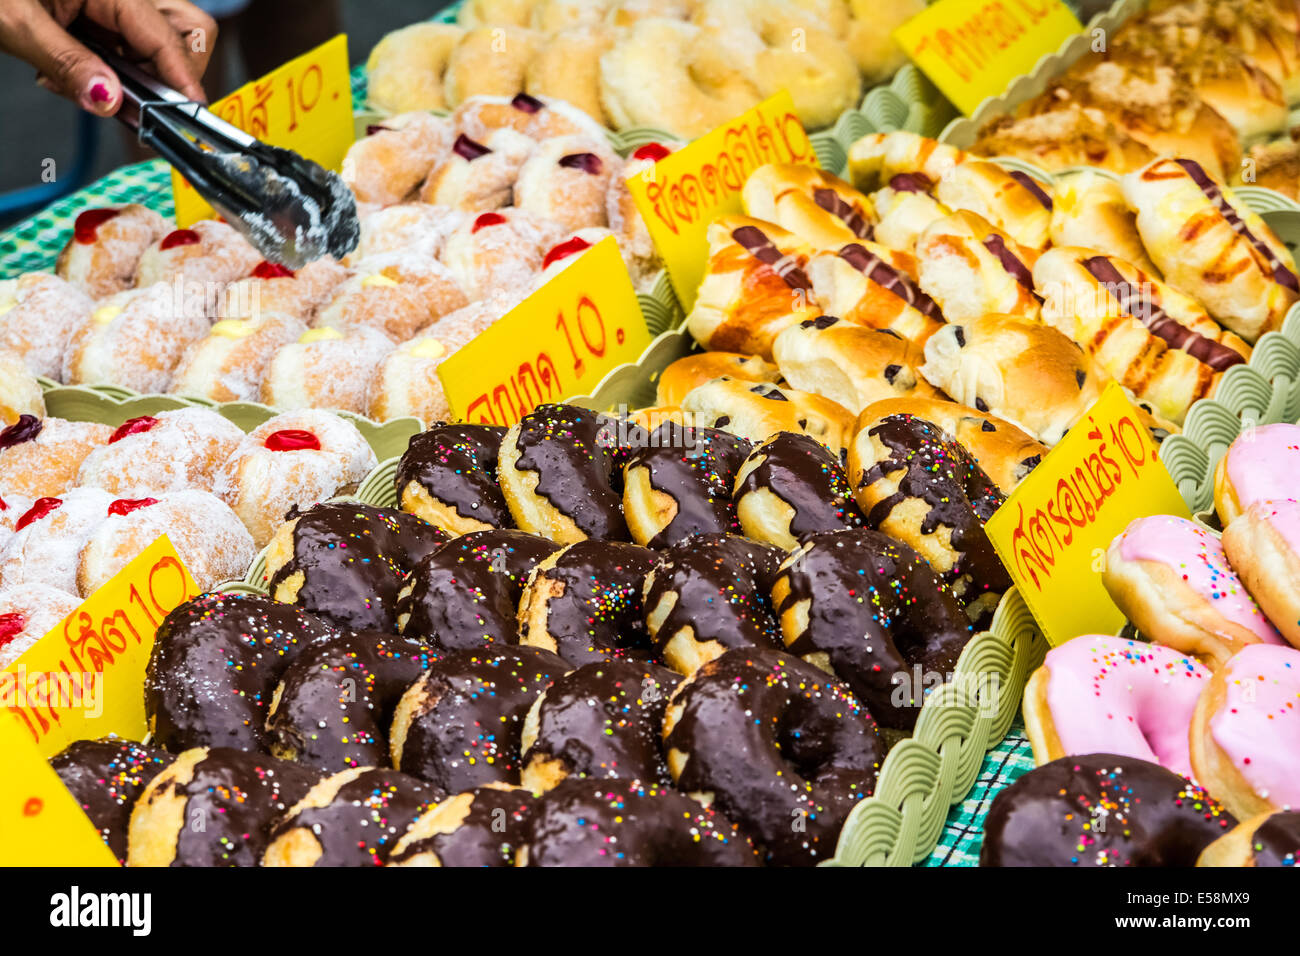 Glazed doughnuts, delicous desert in a nightmarket in Thailand. Ares a type of fried dough confectionery or dessert - Stock Image